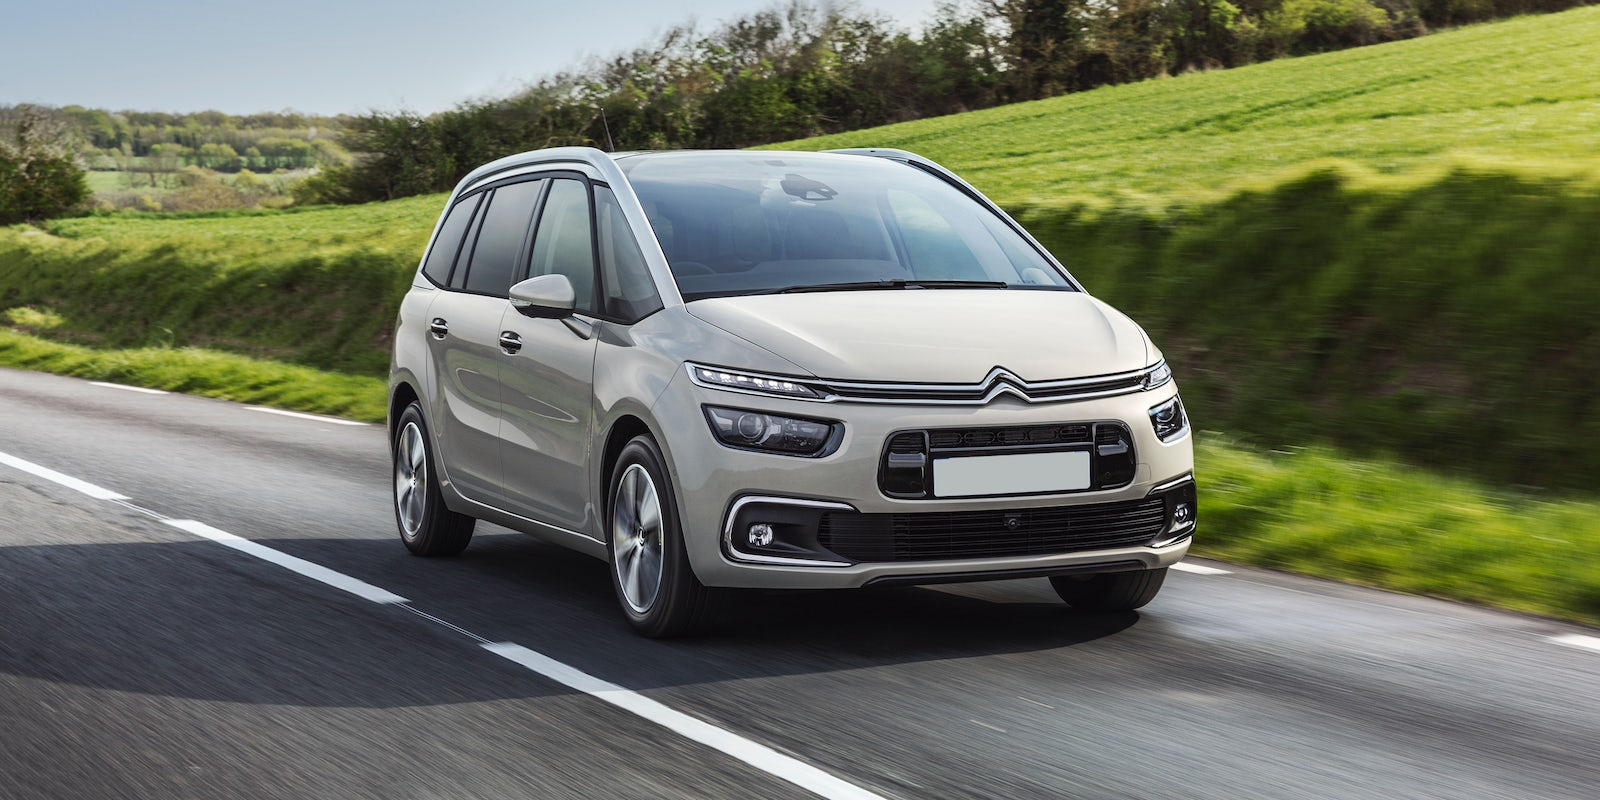 new citroen grand c4 spacetourer review carwow. Black Bedroom Furniture Sets. Home Design Ideas